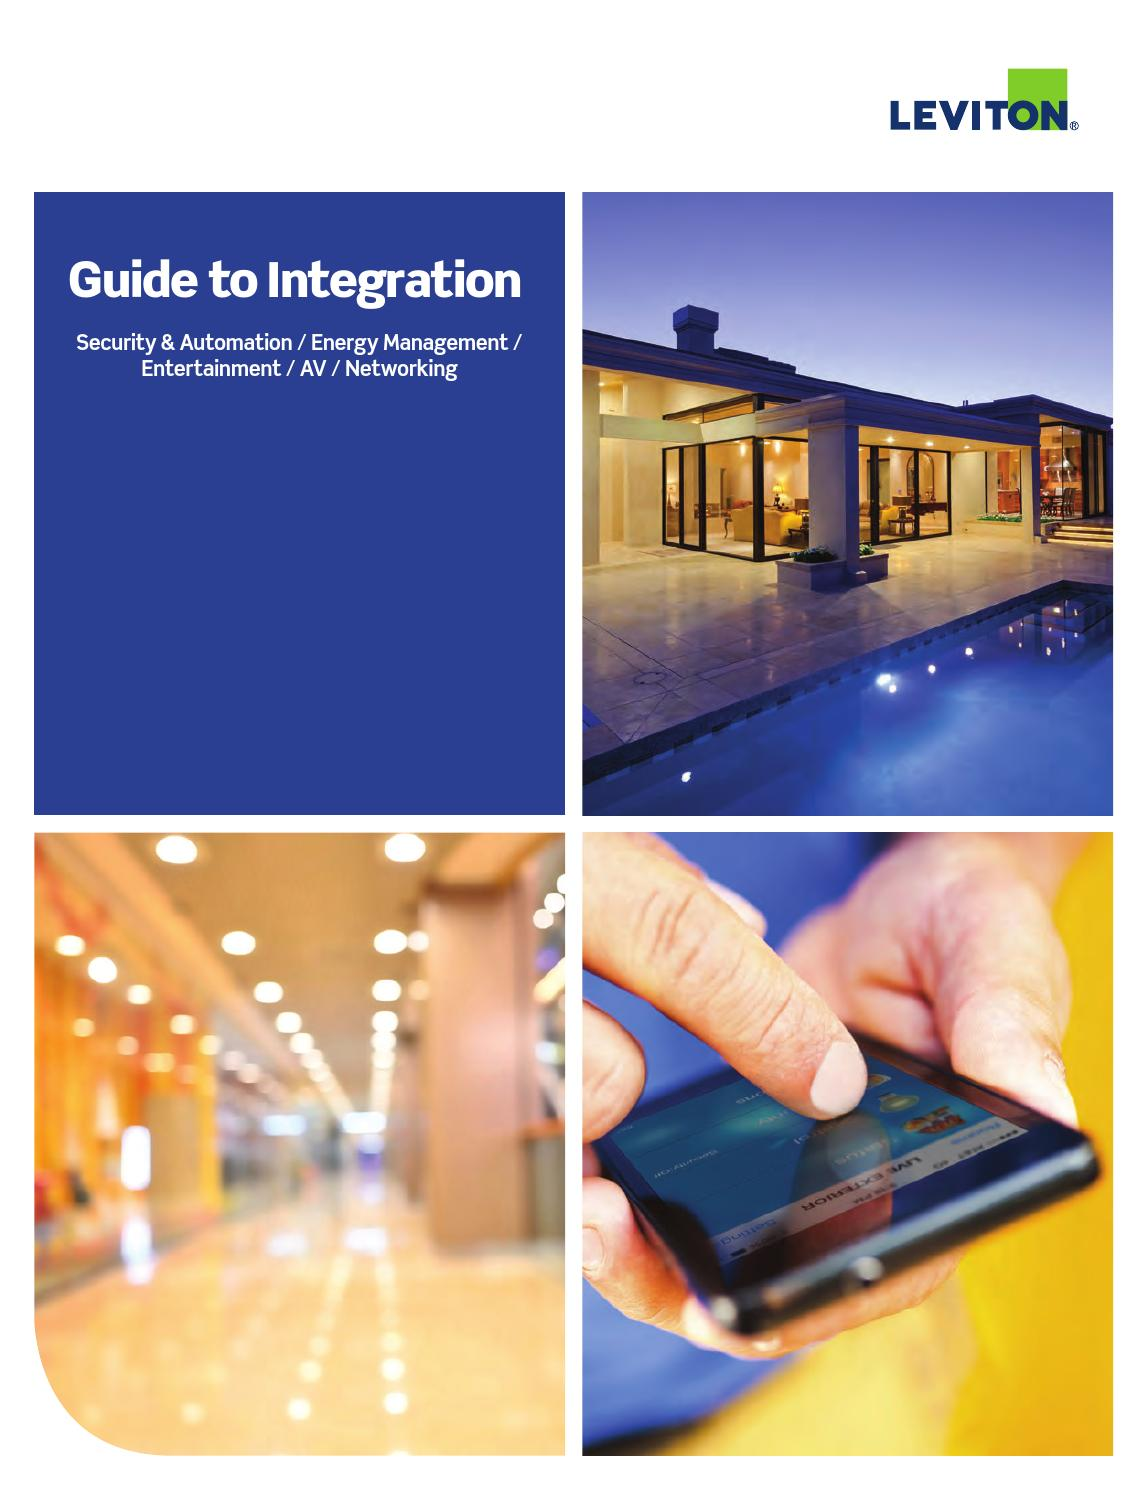 Leviton 2016 guide to integration by Aldous Systems - issuu